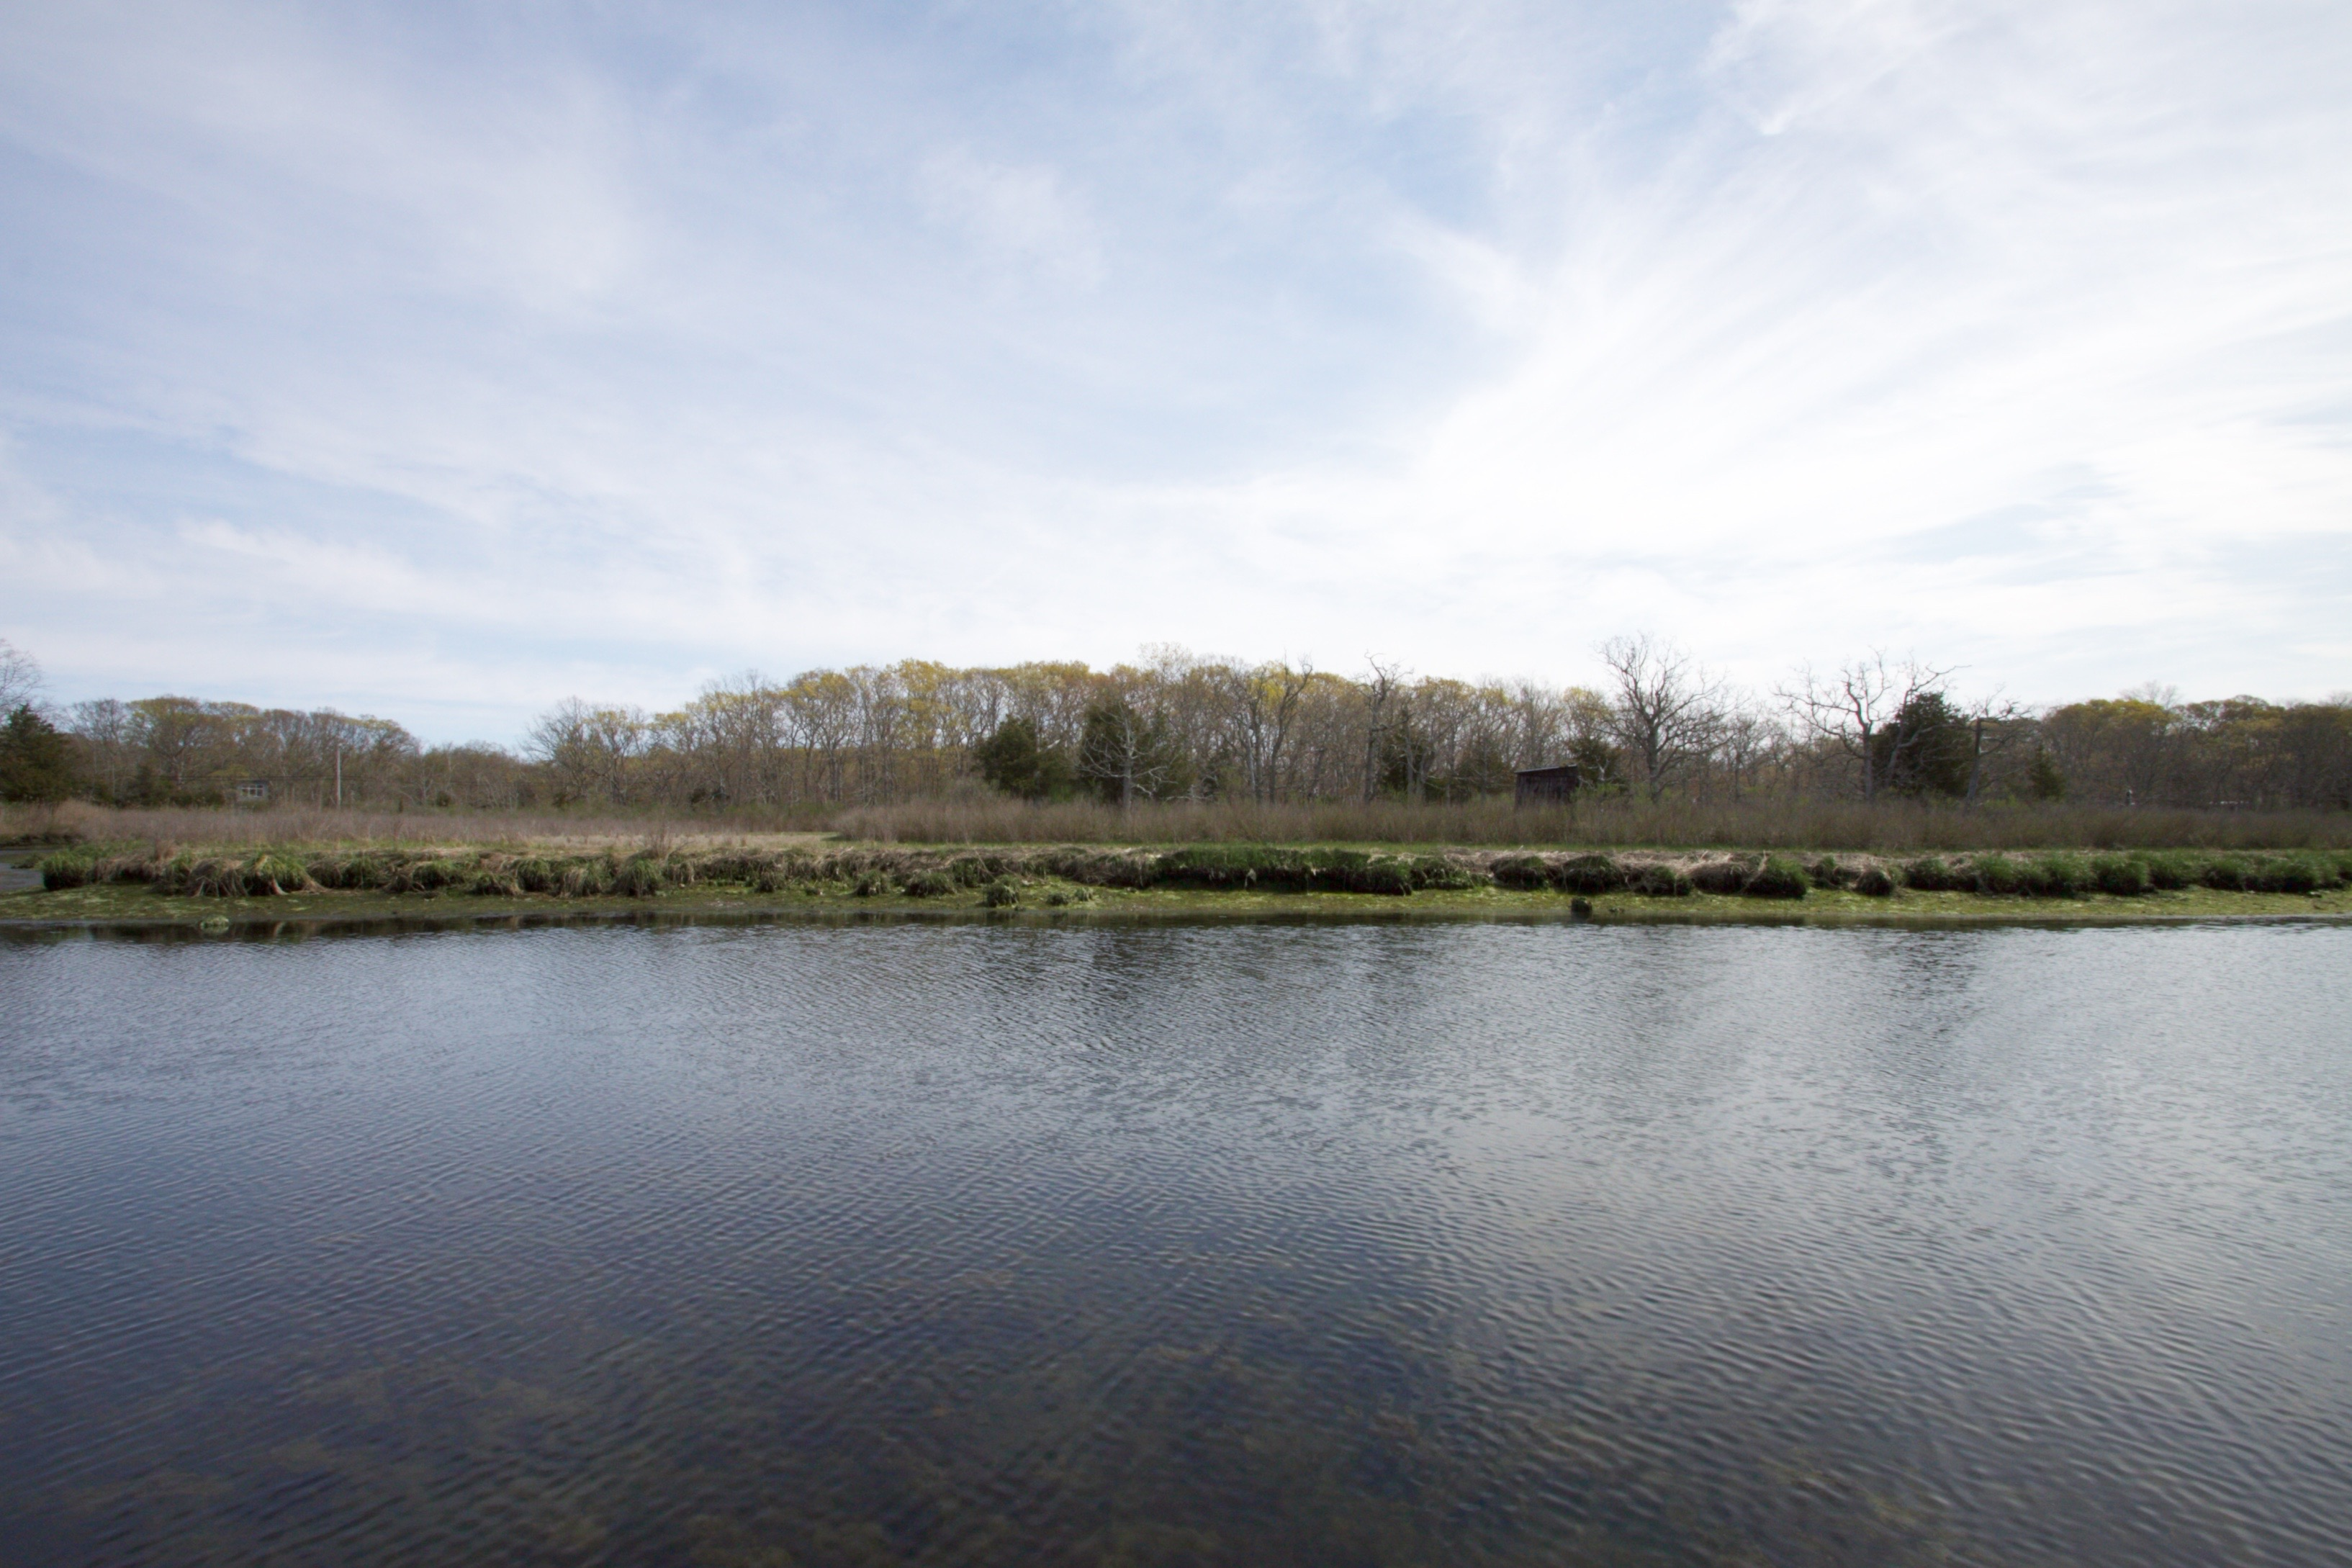 Land for Sale at Land 200 Beebe Dr Cutchogue, New York, 11935 United States